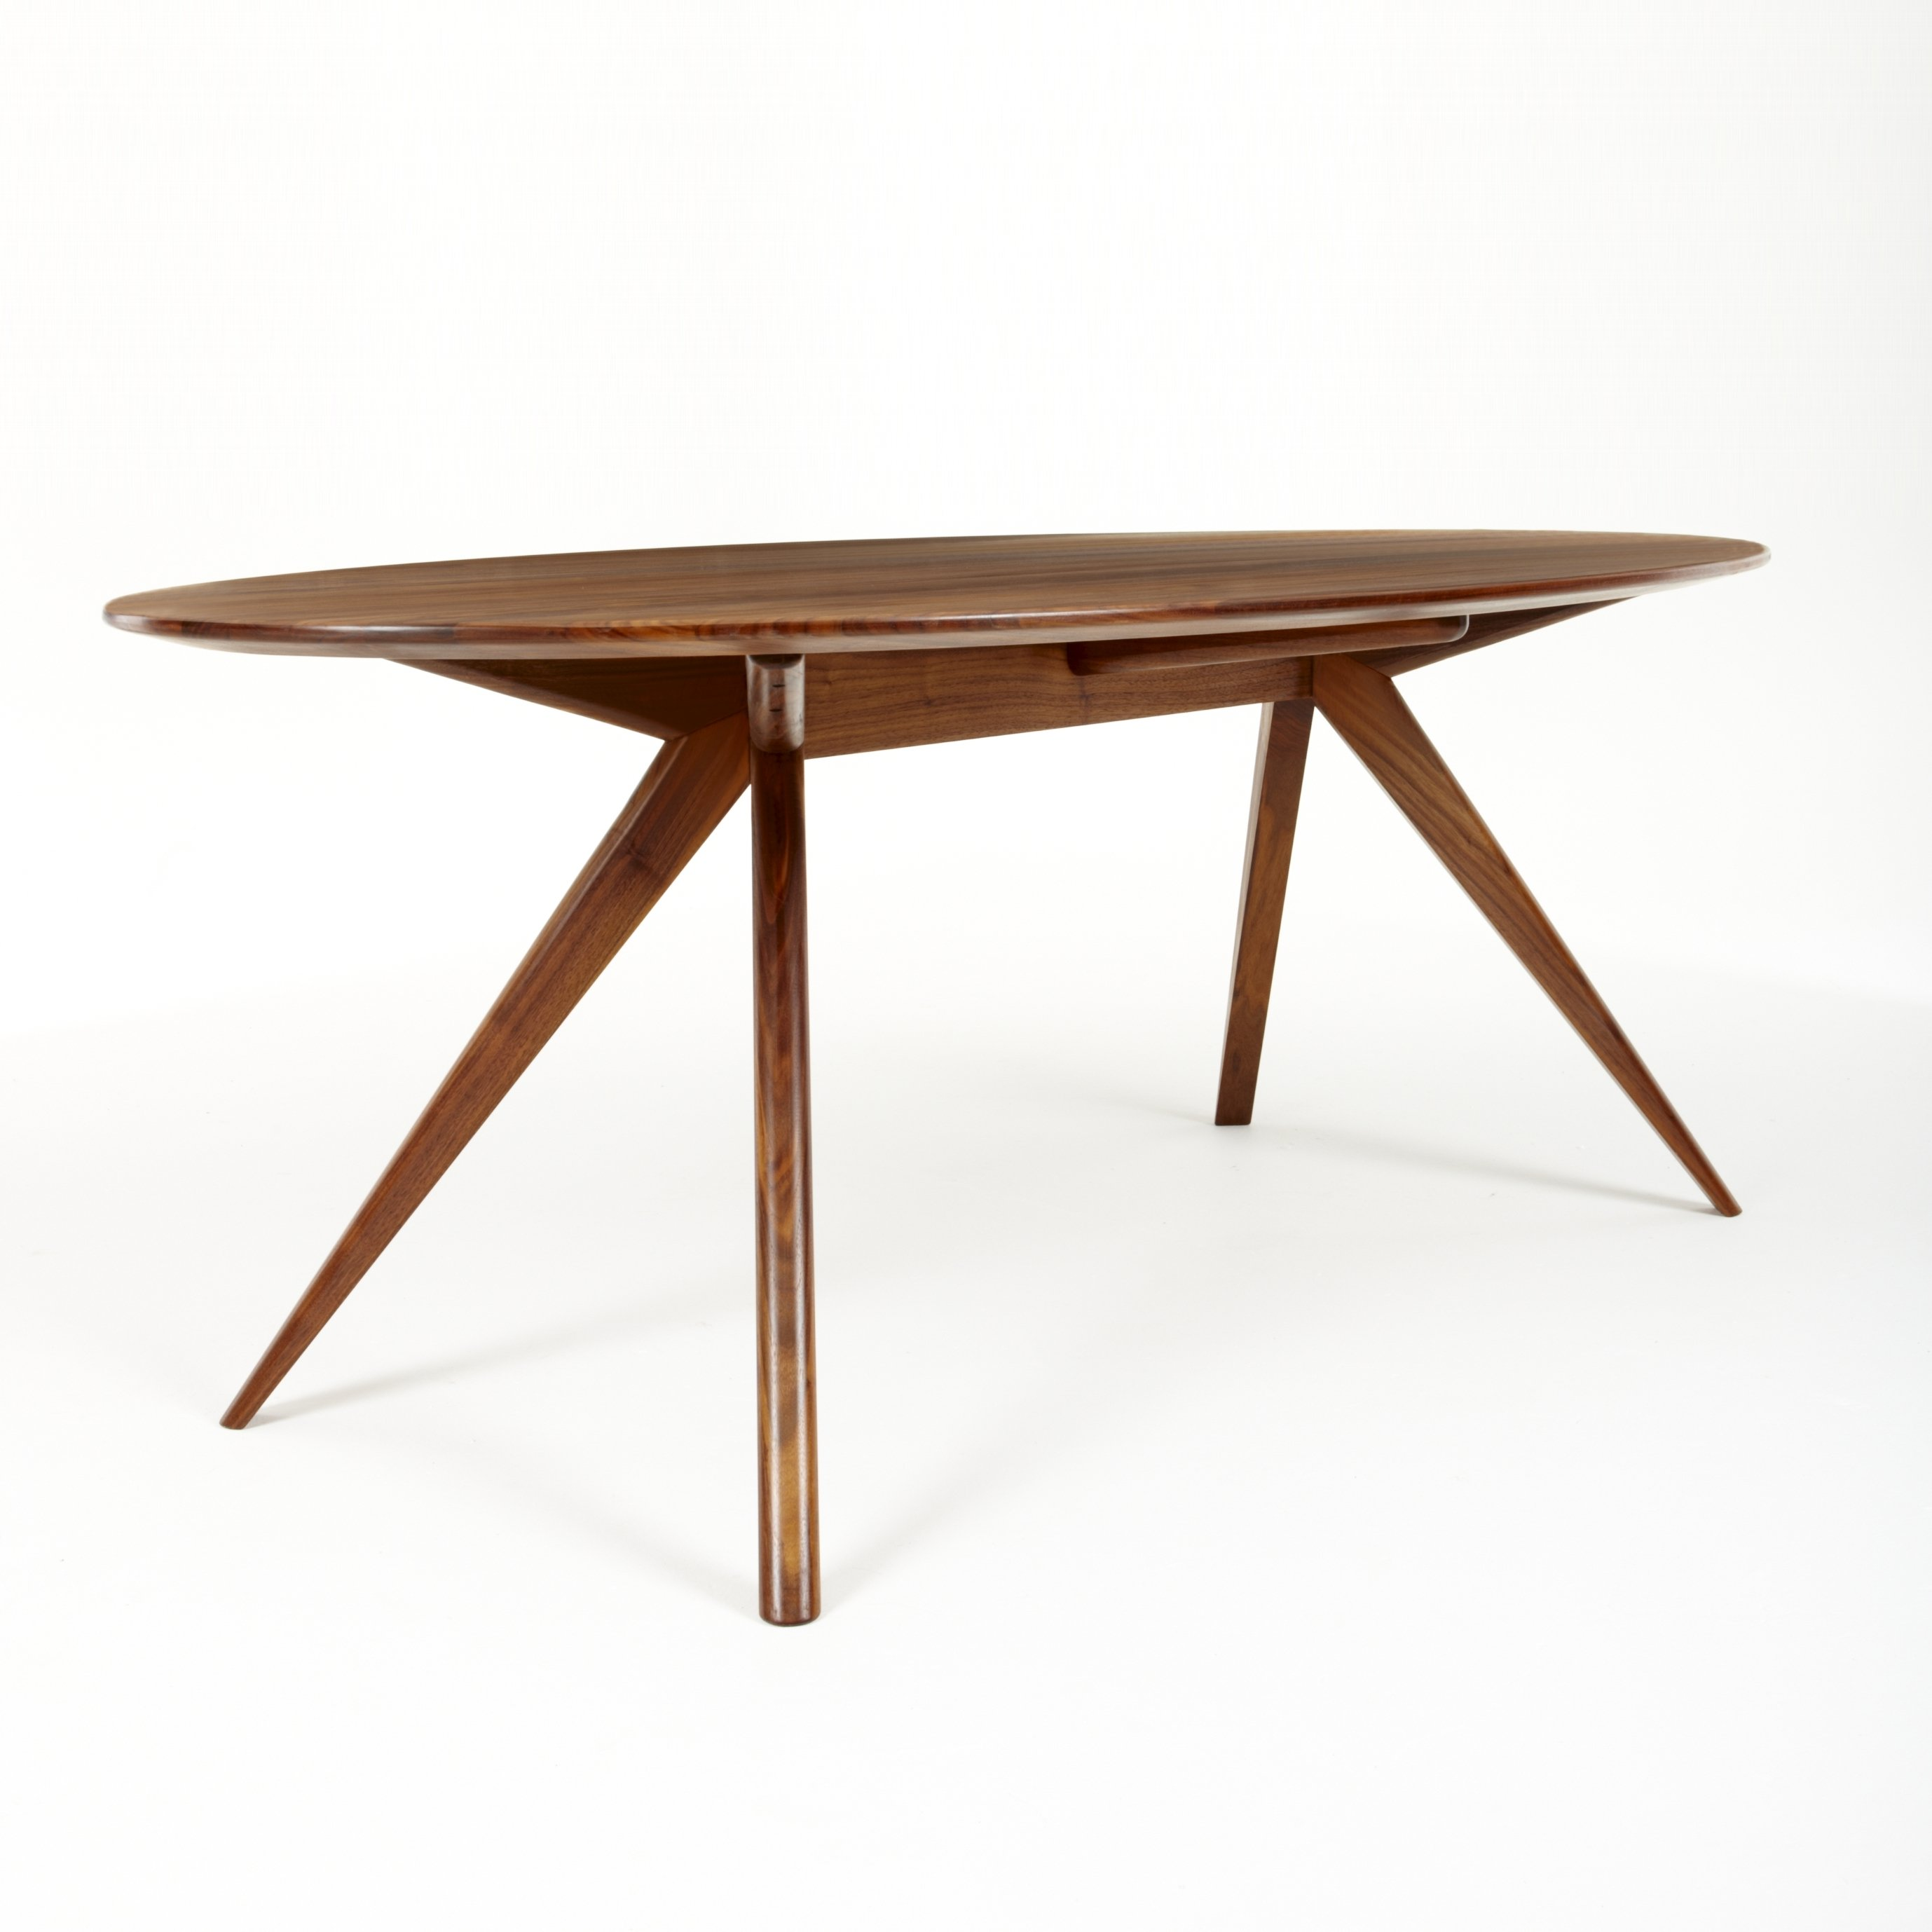 Oskar table ovale by dare studio design sean dare for Table ovale design